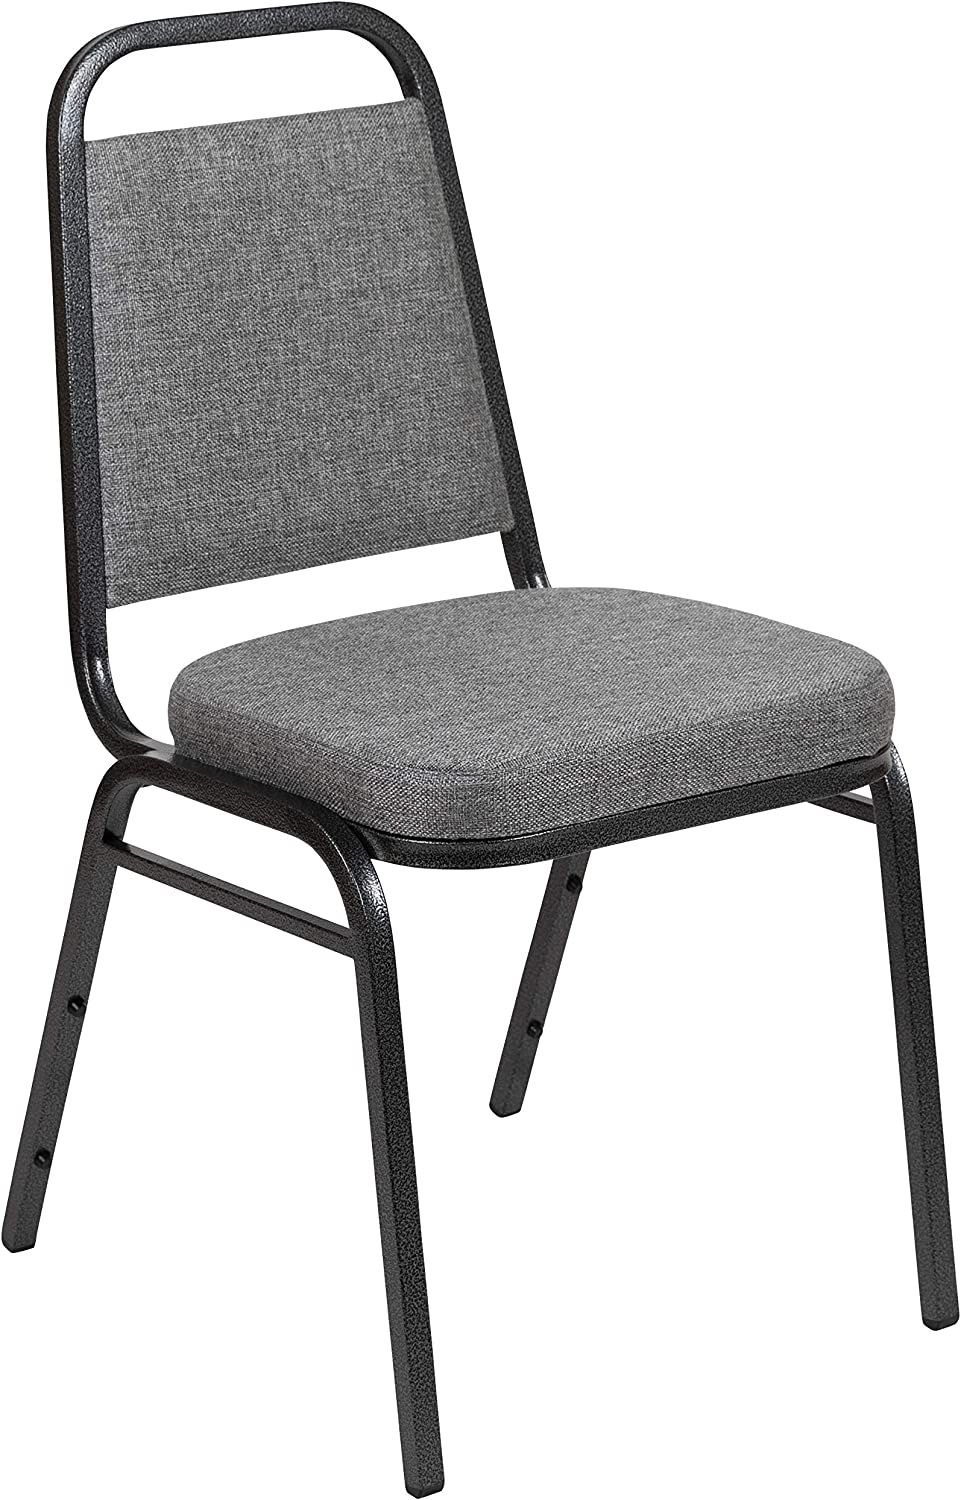 """Flash Furniture HERCULES Series Trapezoidal Back Stacking Banquet Chair with 2.5"""" Thick Seat in Gray Fabric - Silver Vein Frame"""